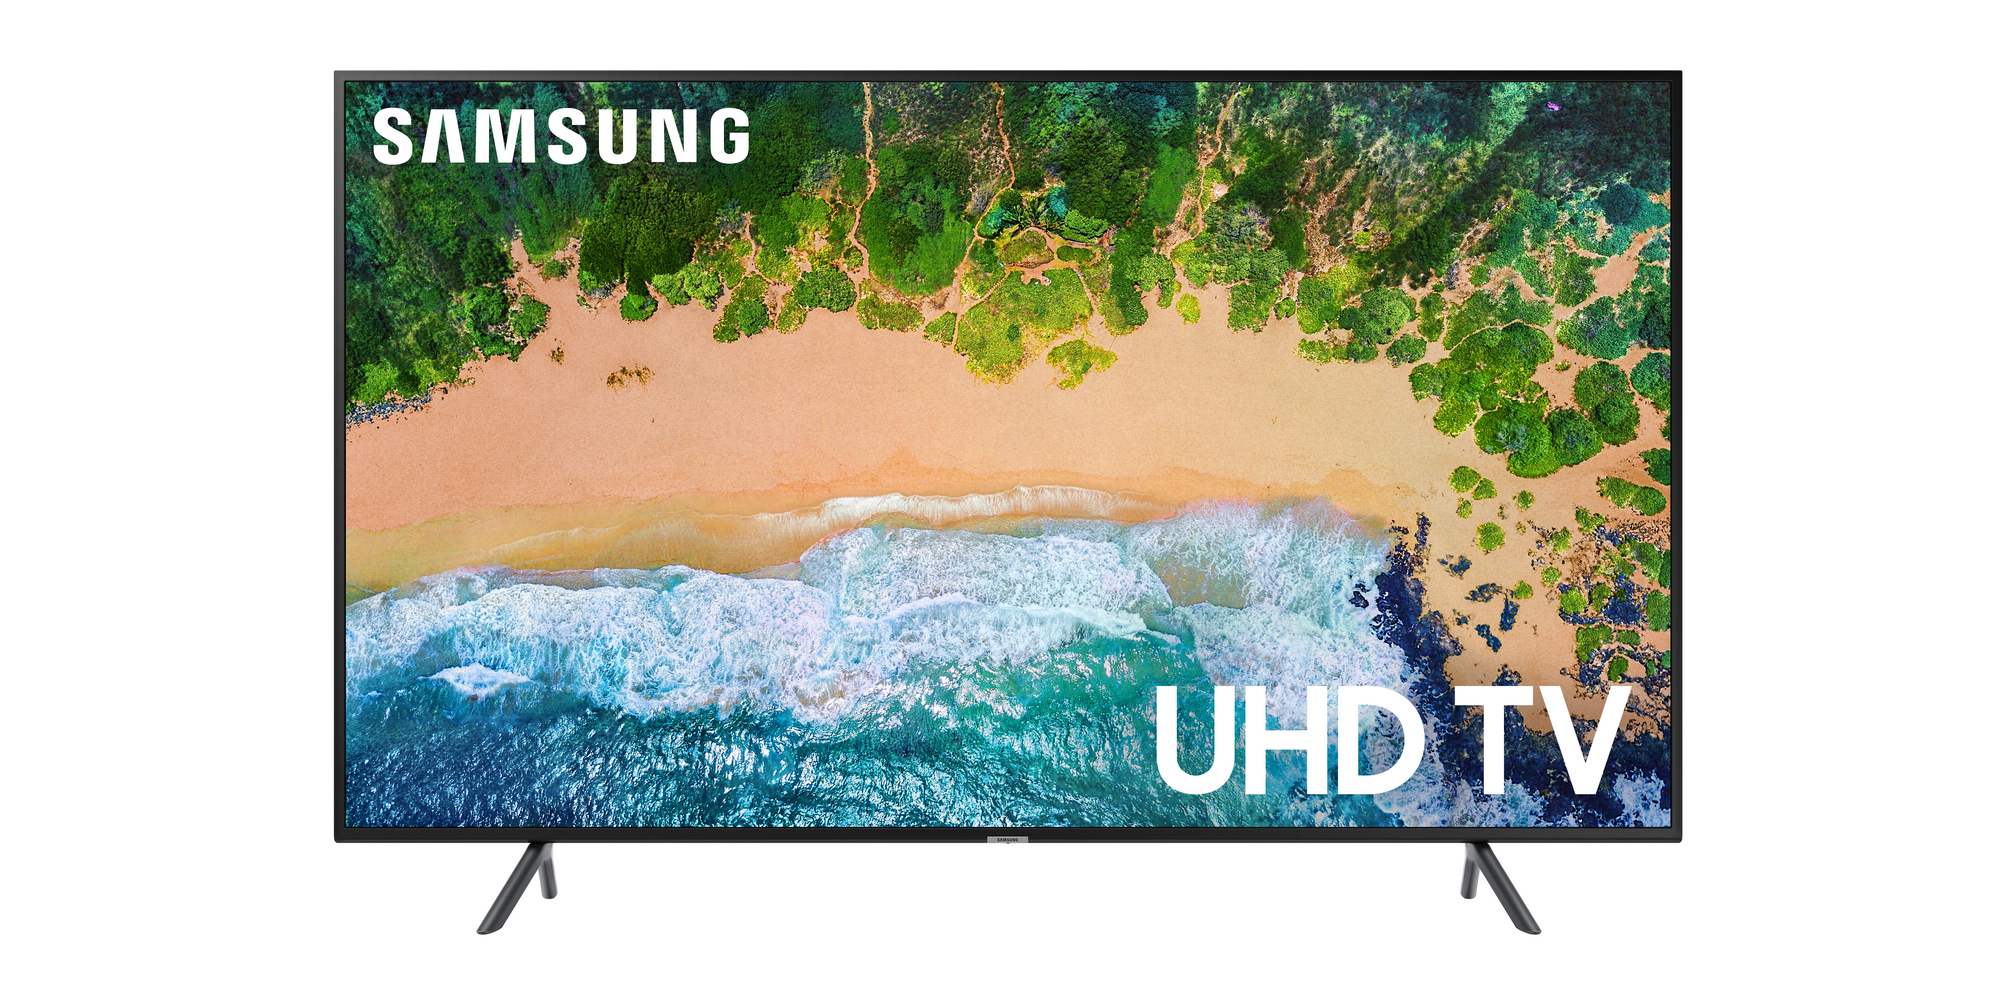 Samsung's 58-inch 4K HDR Smart UDHTV returns to Cyber Monday price at $448 (Reg. $650)